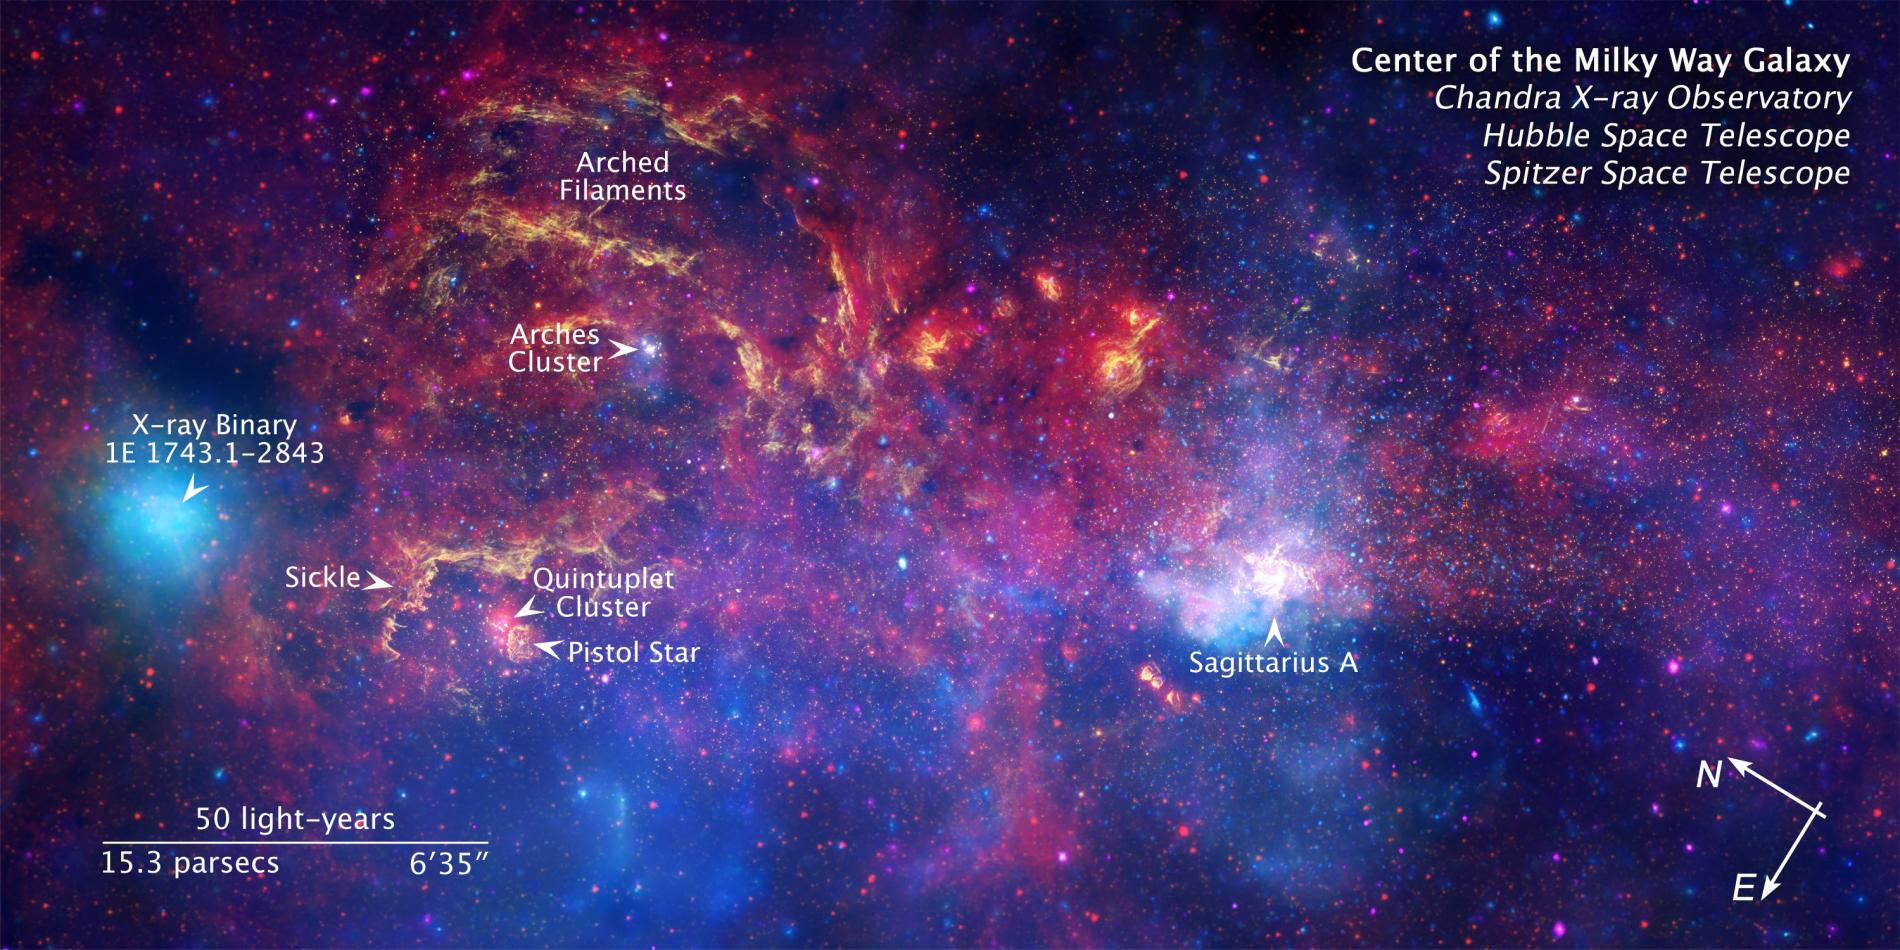 Image of the central regions of the Milky Way, with the position of Sagittarius A * indicated